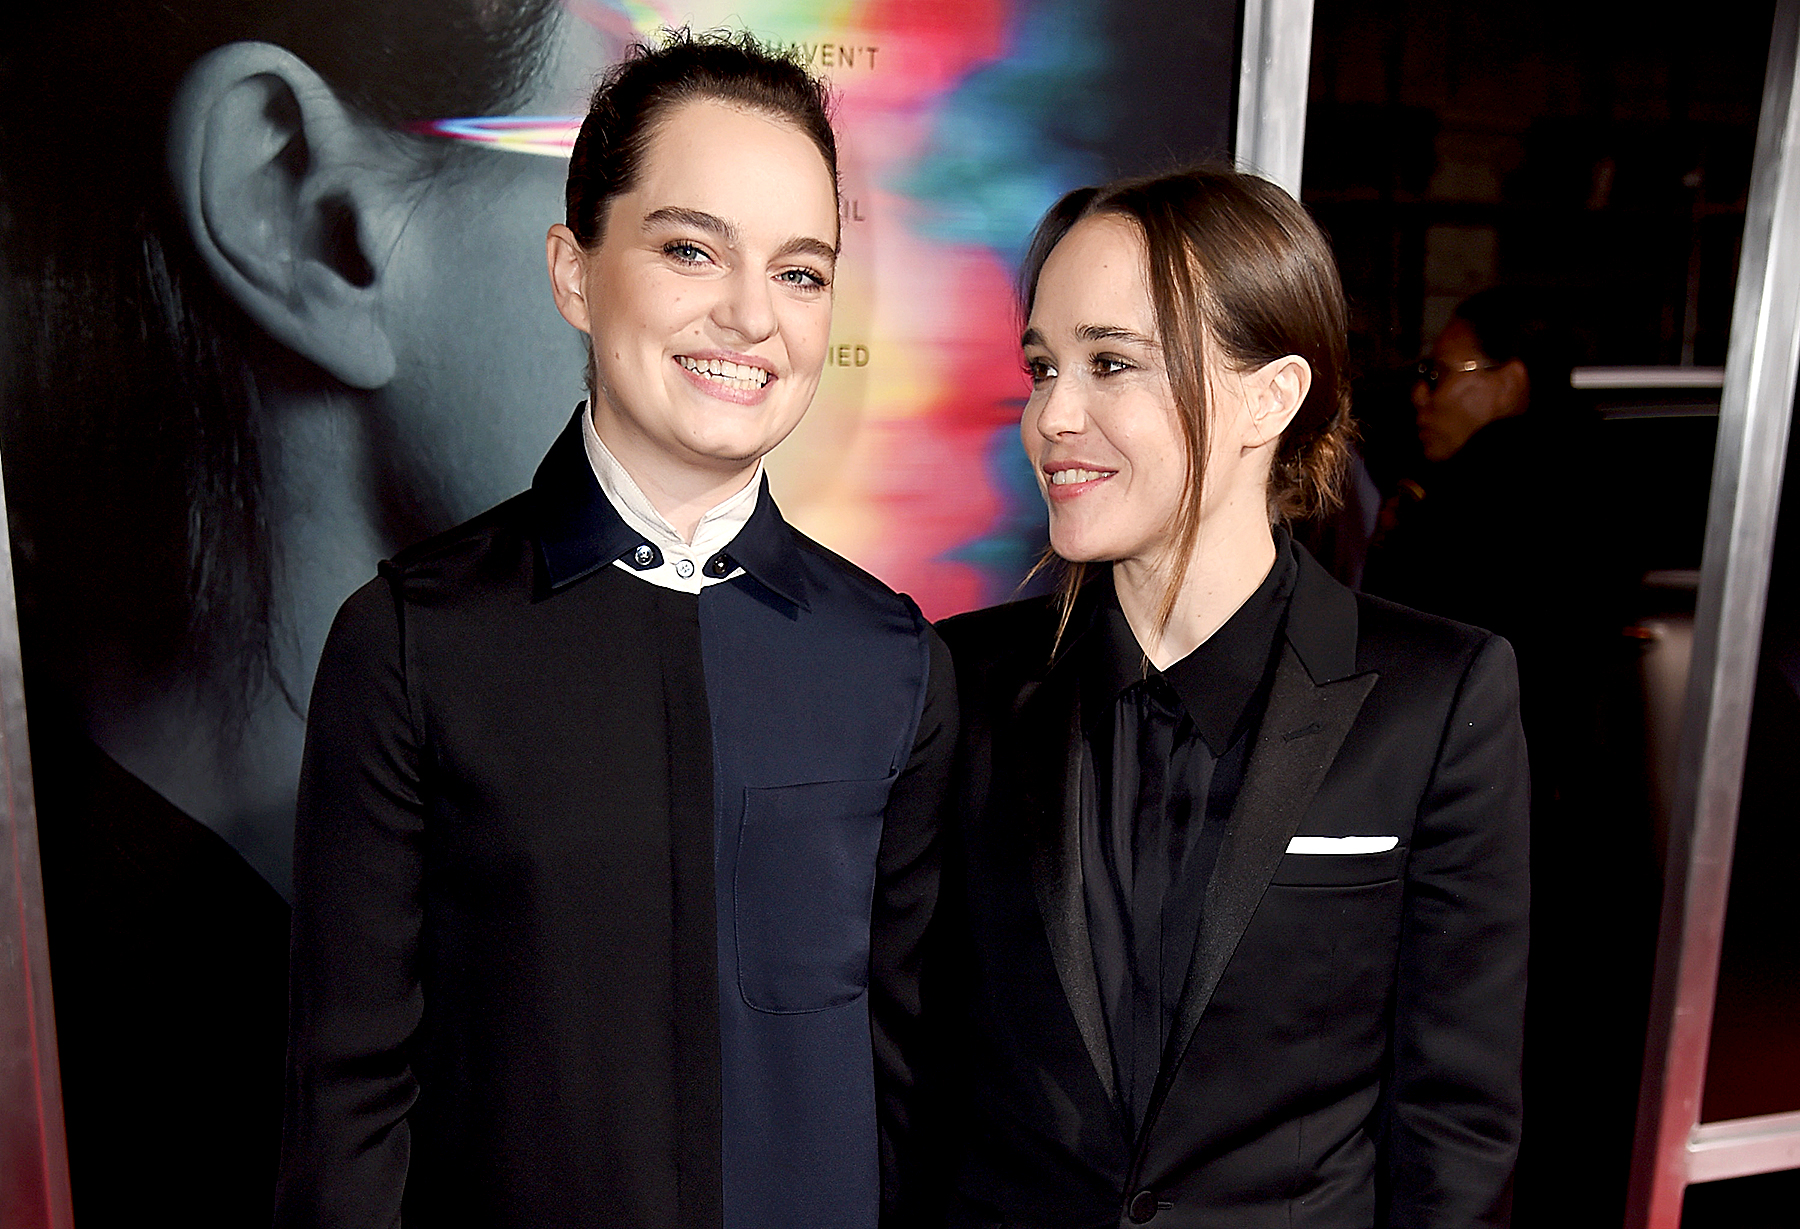 Ellen Page and Emma Portner tie the knot